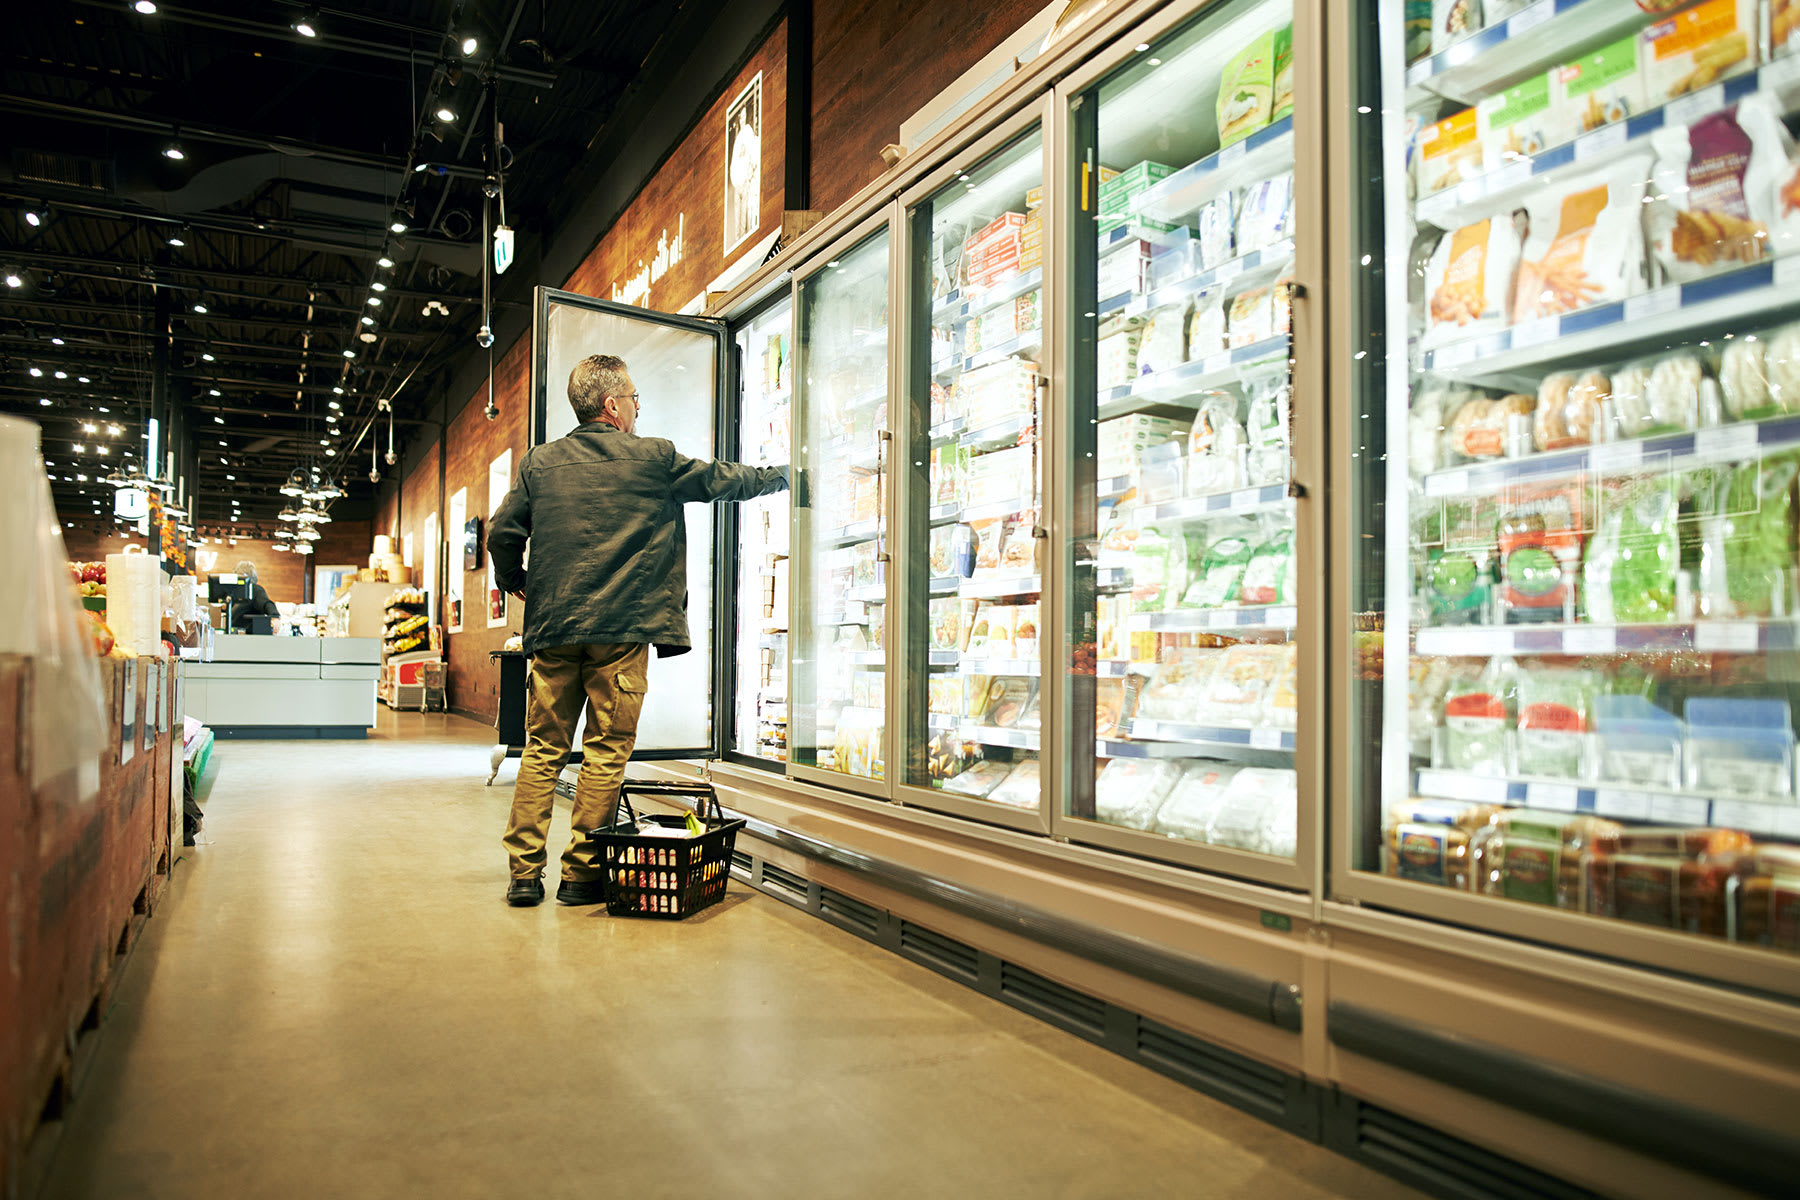 Man shopping in grocery store froze aisle and taking a product from the shelves.